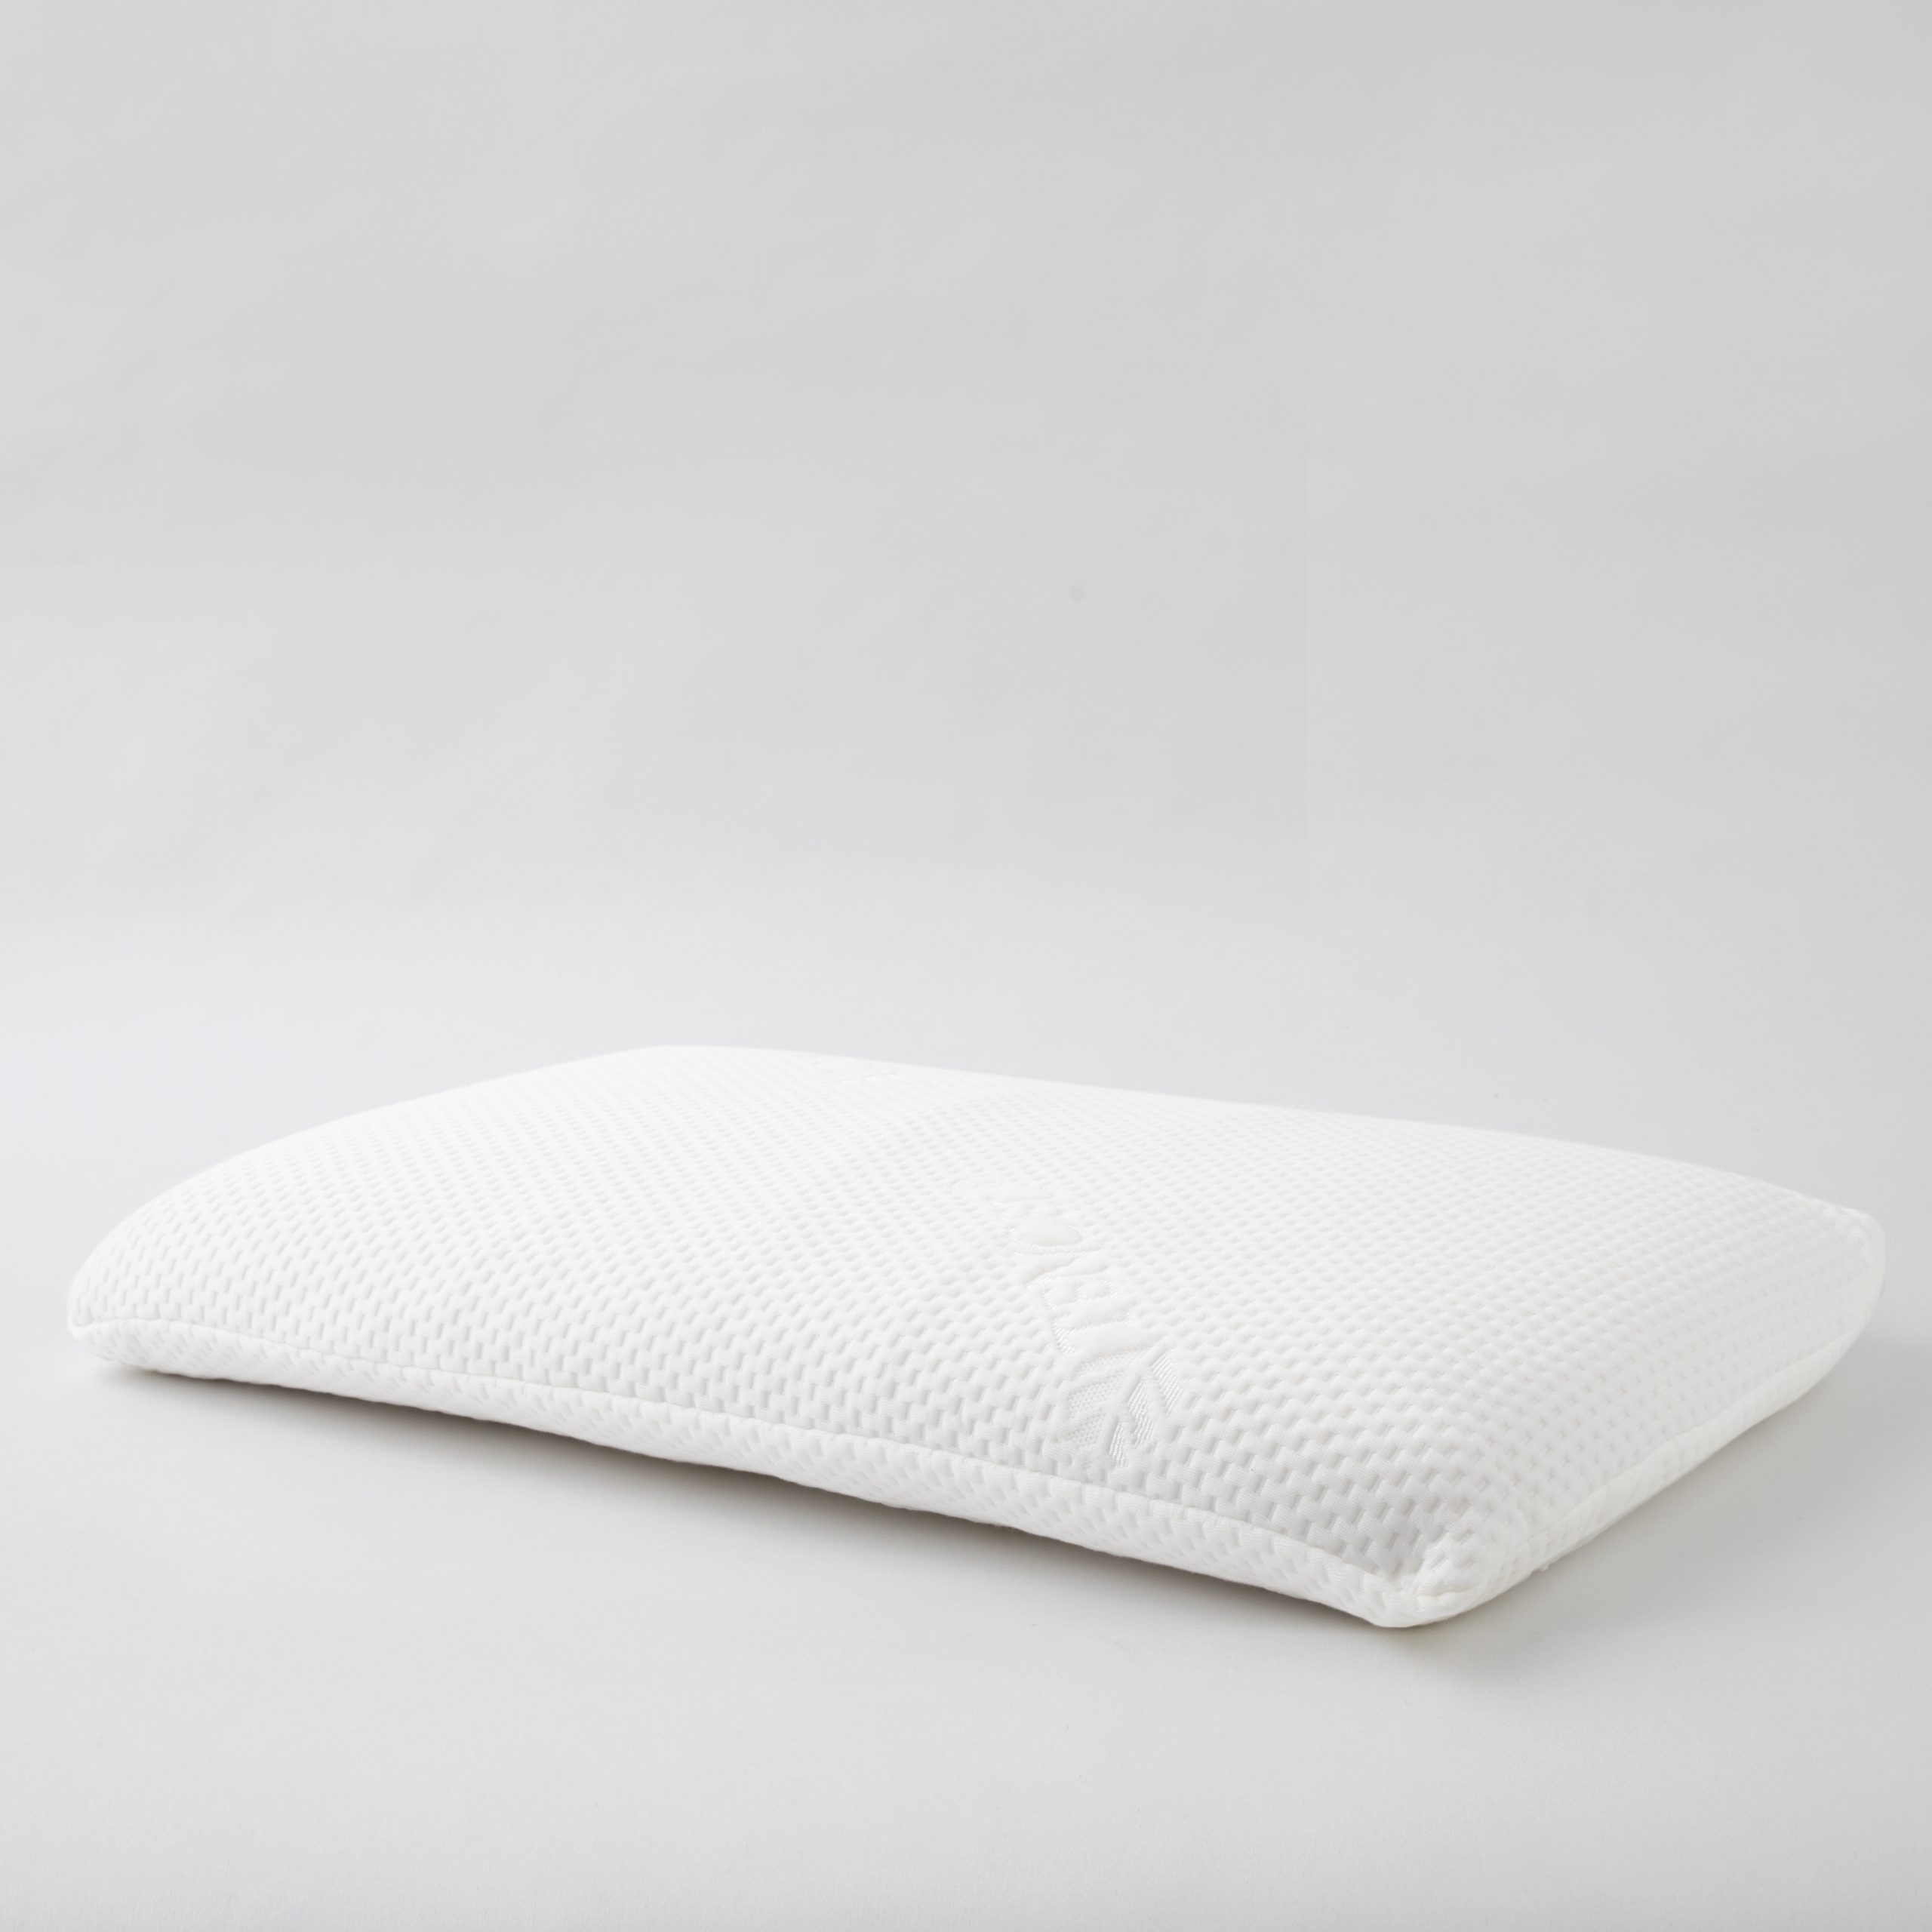 Belize Natural Latex Medium Profile Pillow with Tencel Cover